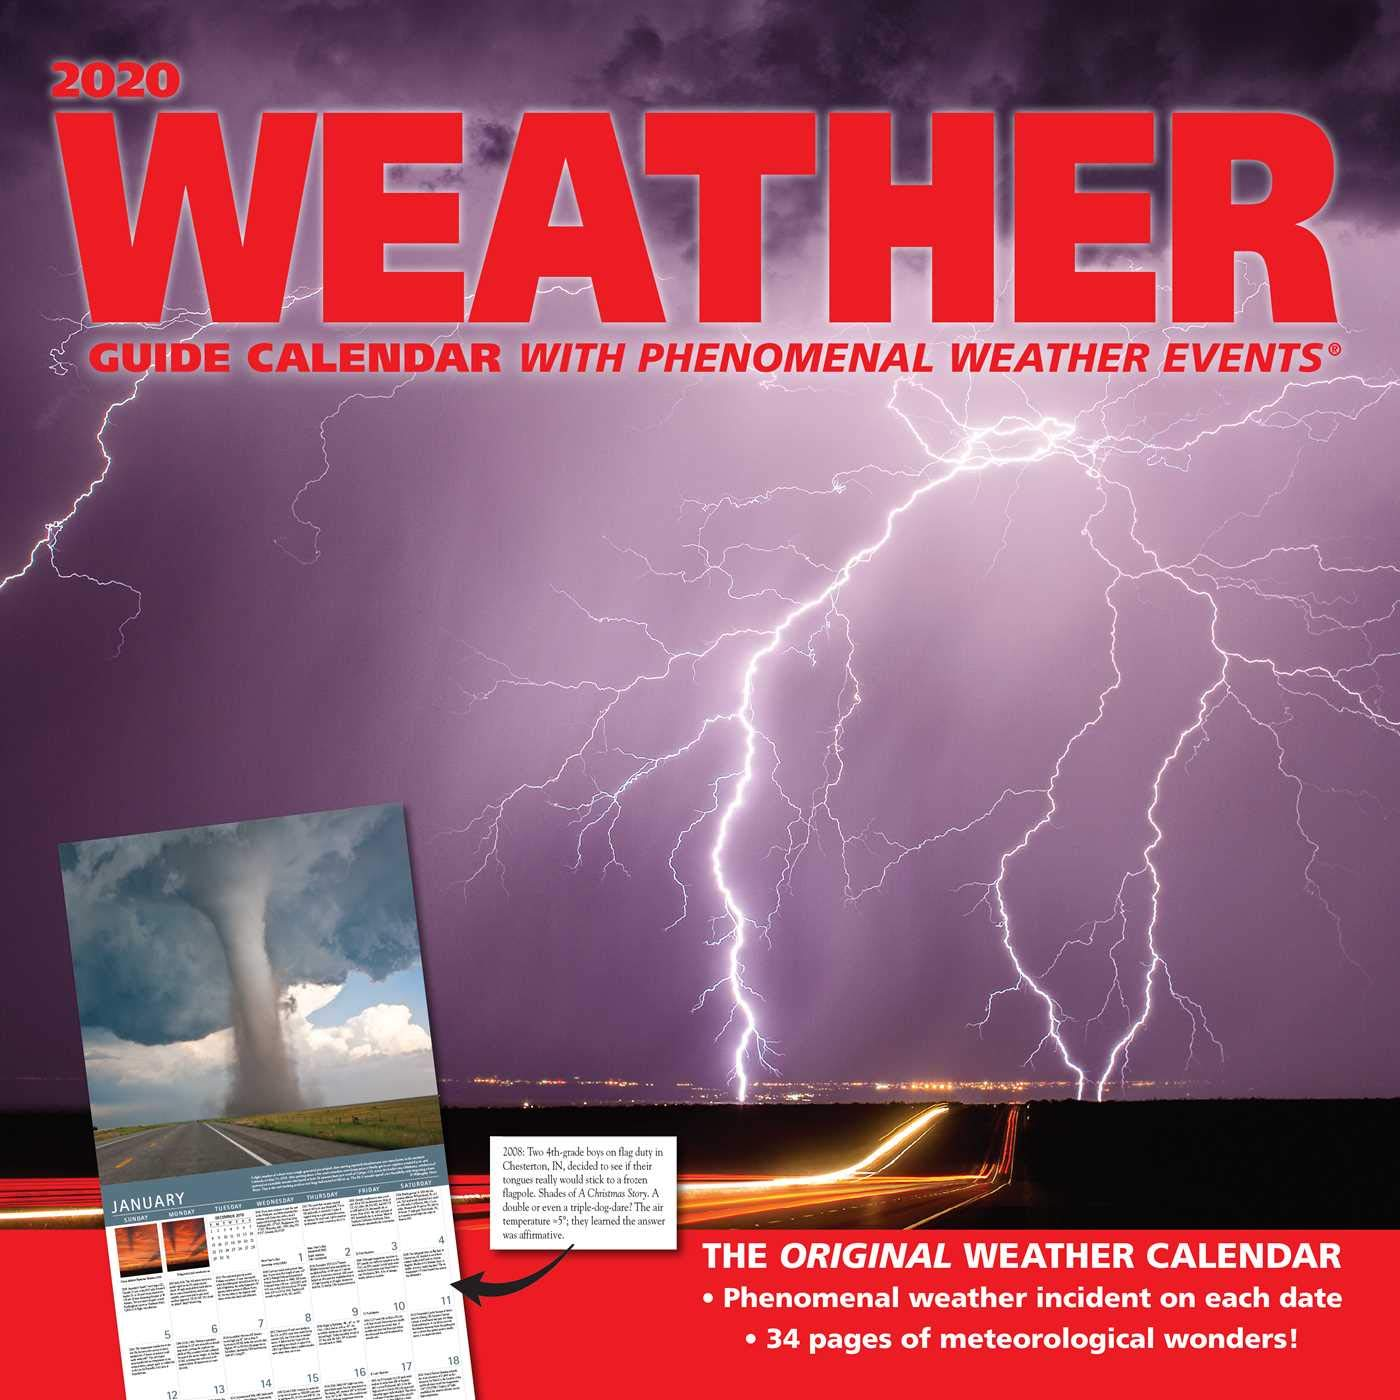 Weather Calendar 2020 Weather Guide 2020 Wall Calendar: Andrews McMeel Publishing